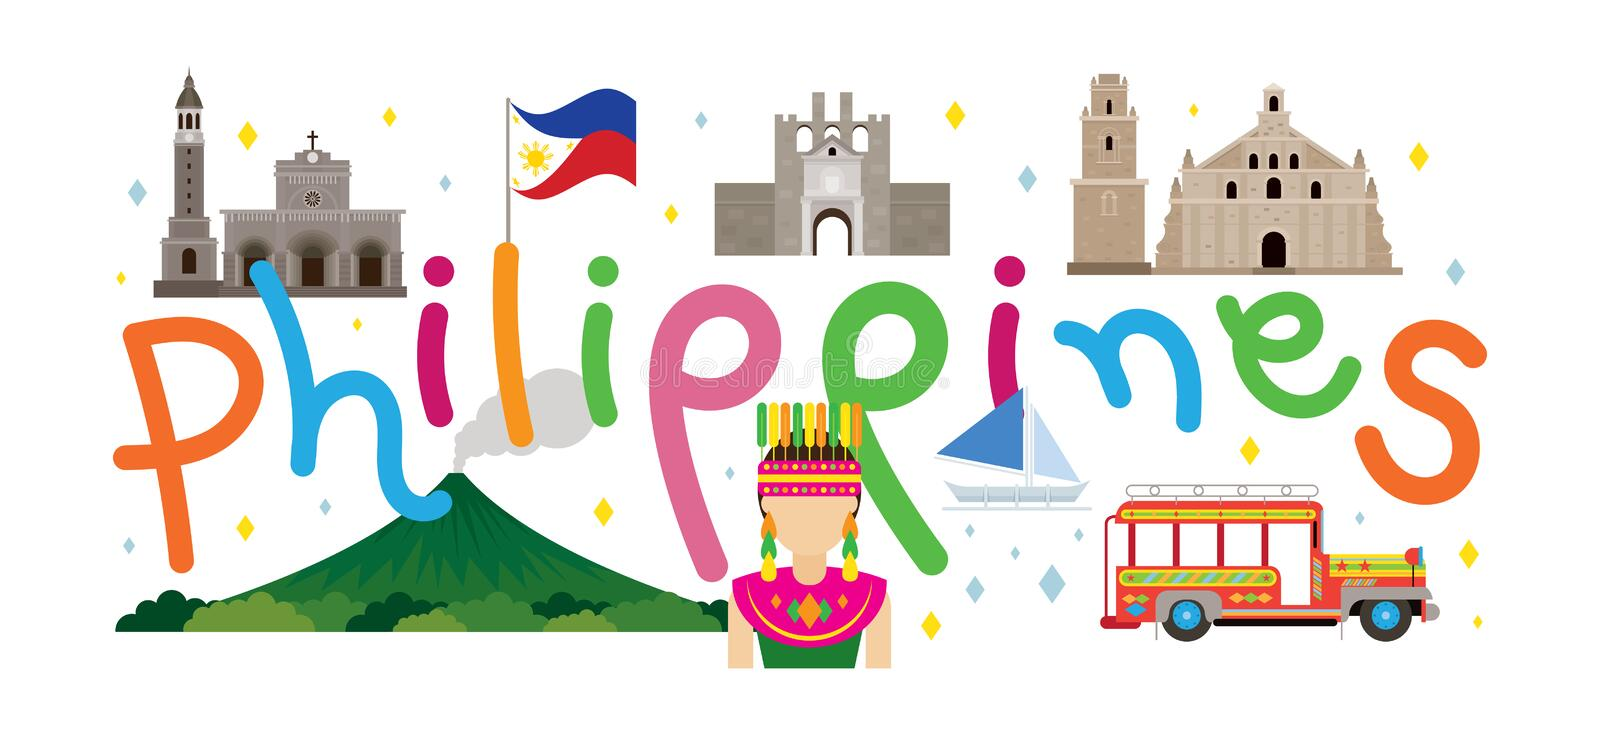 Philippines Travel and Attraction royalty free illustration